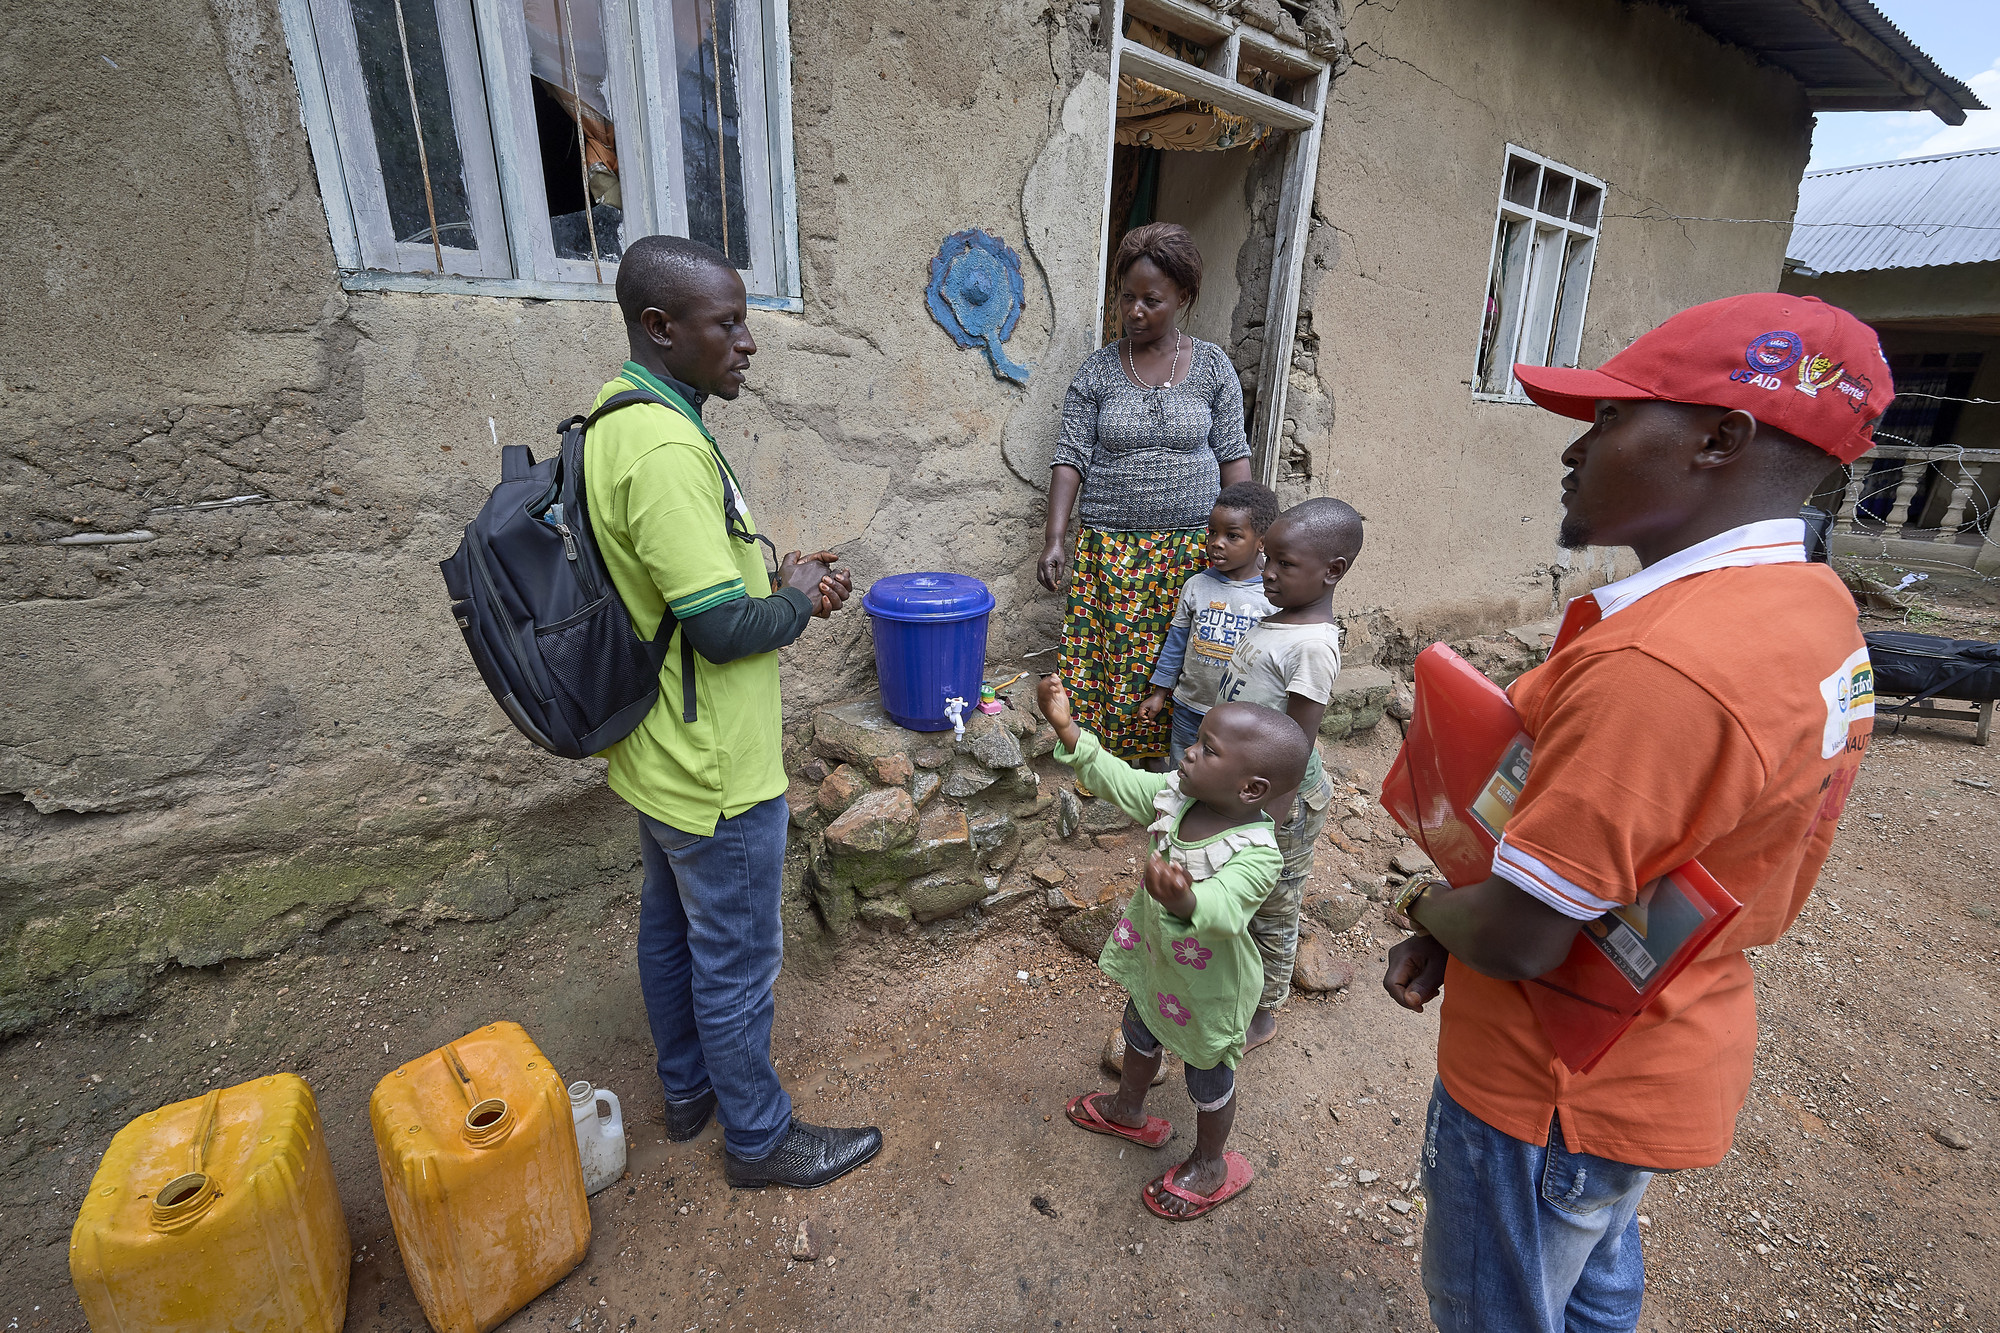 A community health promoter talks with children in front of their home in Beni, a city in eastern Democratic Republic of the Congo that was hard hit by the Ebola outbreak that began in 2018.